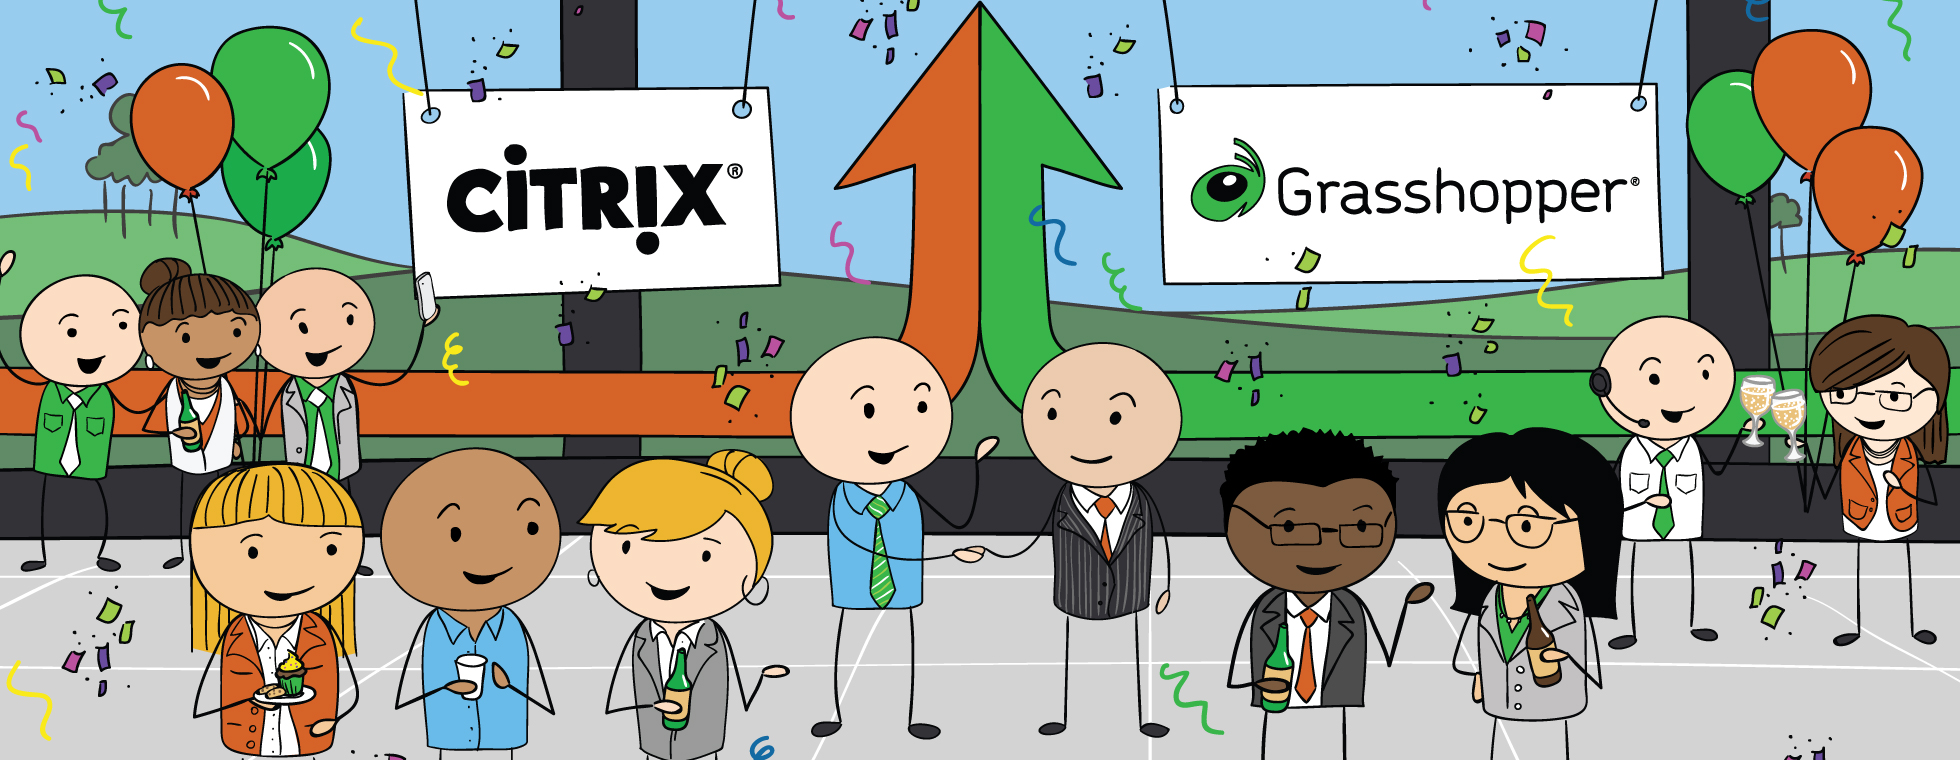 Citrix acquires Grasshopper